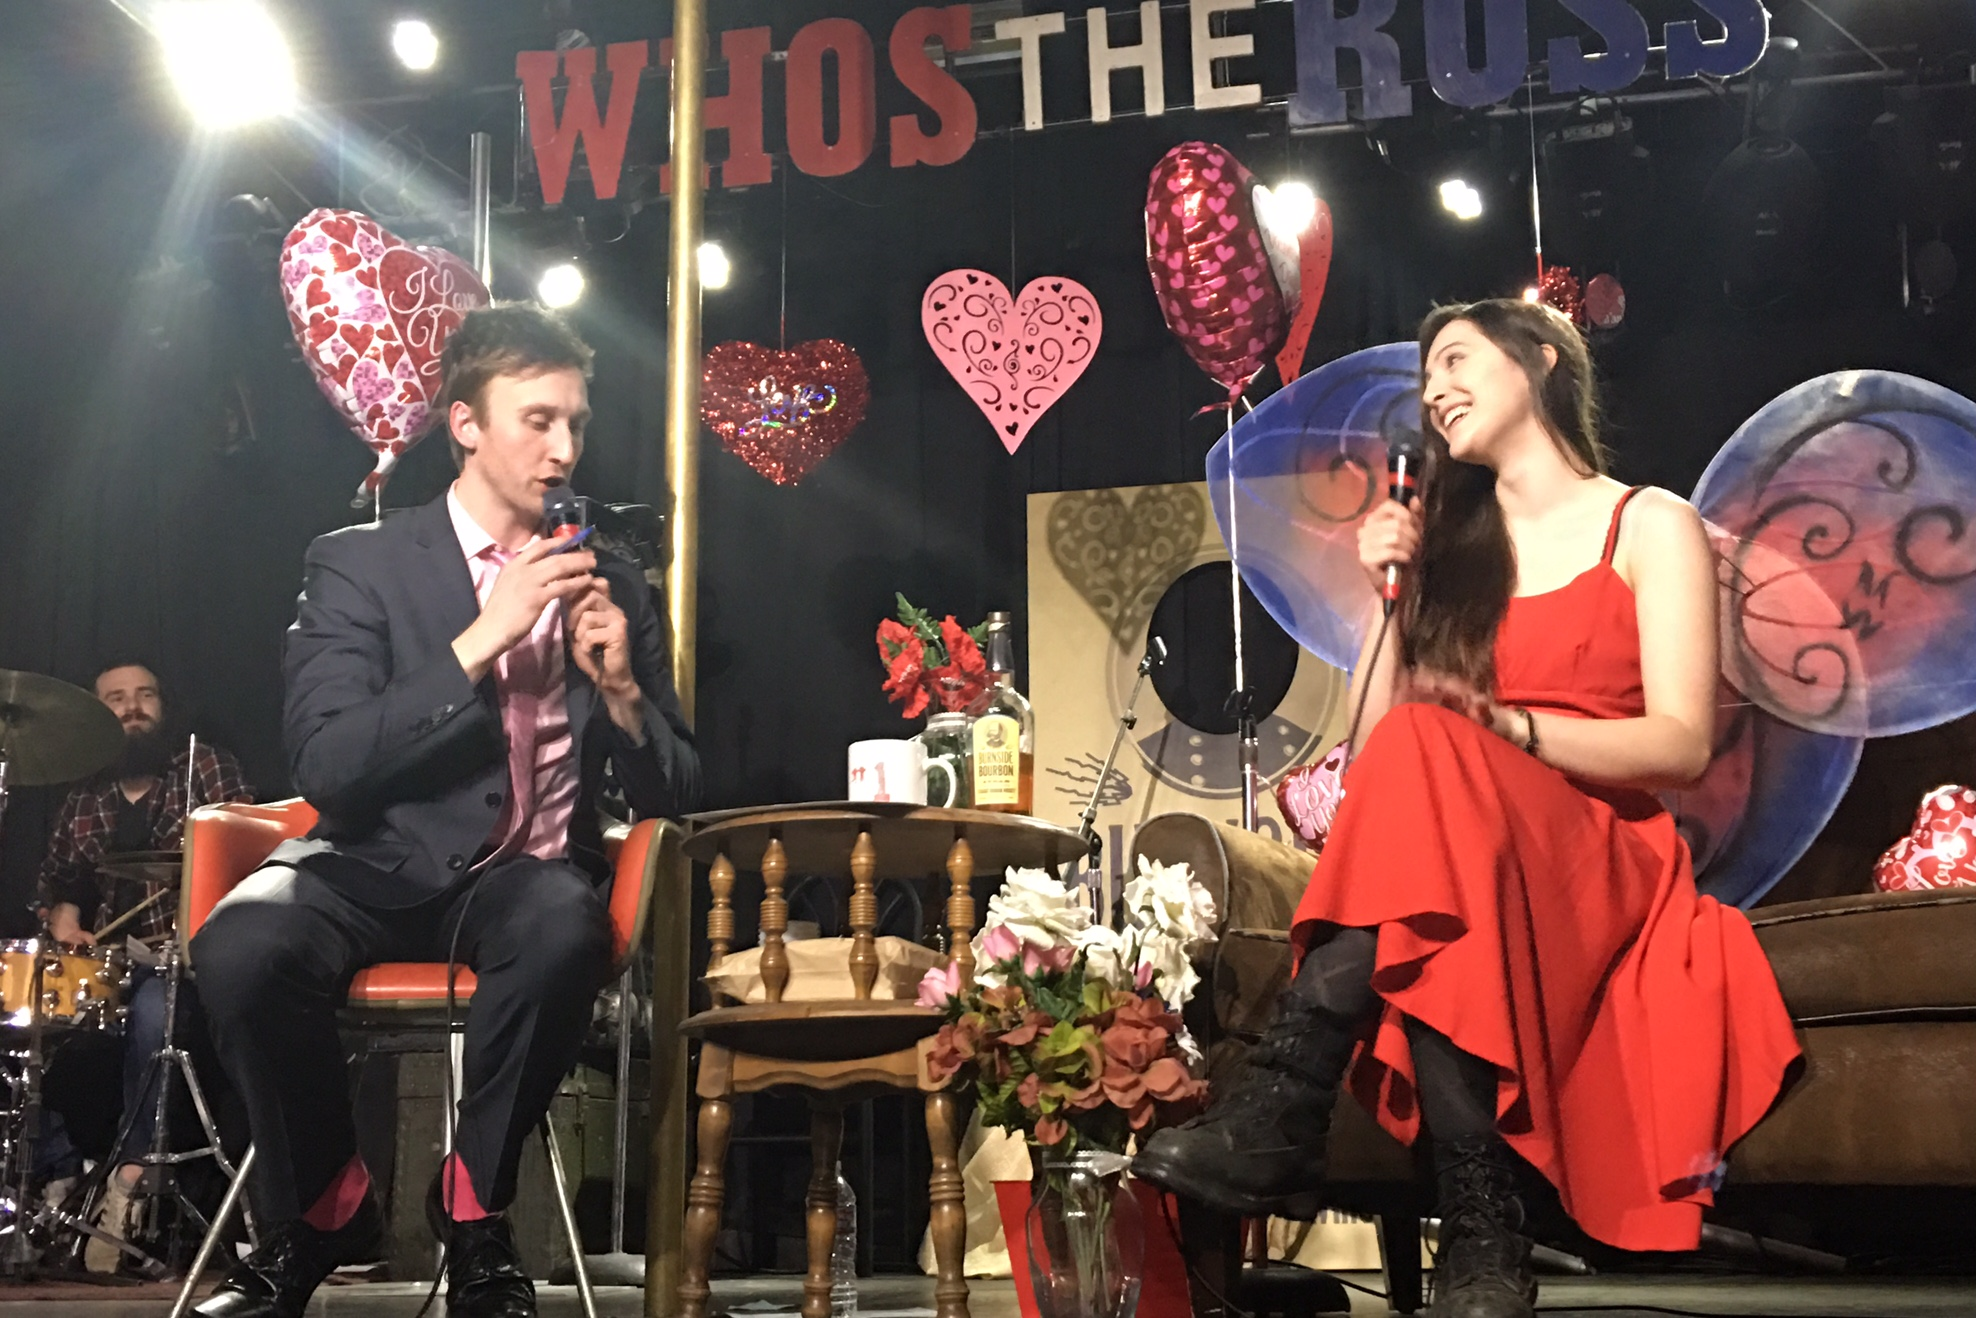 """Maiah Wynne Aaron Ross PDX Portland comedy comedian funny late-night talk show """"Who's the Ross?"""" host interview"""